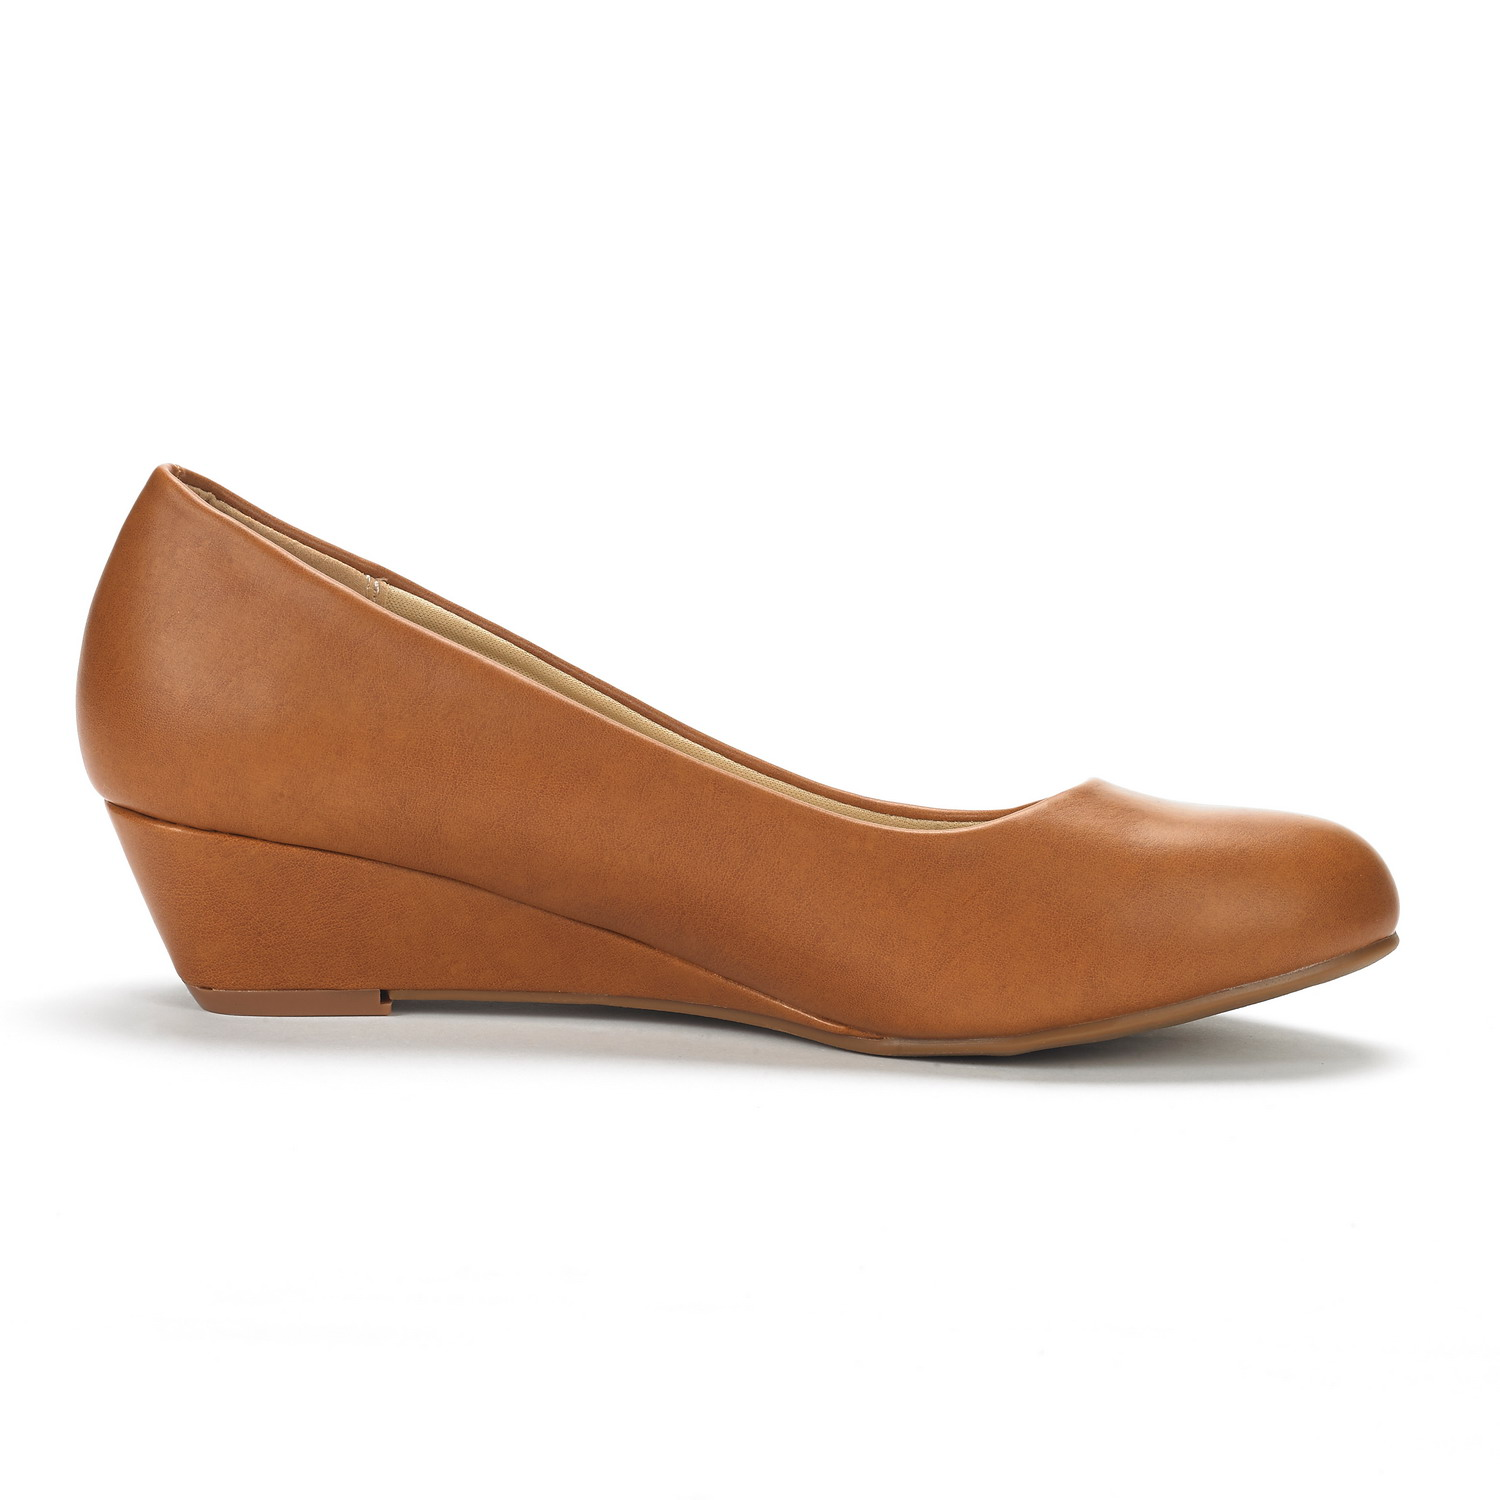 DREAM-PAIRS-Women-039-s-Mid-Wedge-Heel-Shoes-Slip-On-Comfort-Dress-Shoes-Suede-PU thumbnail 13